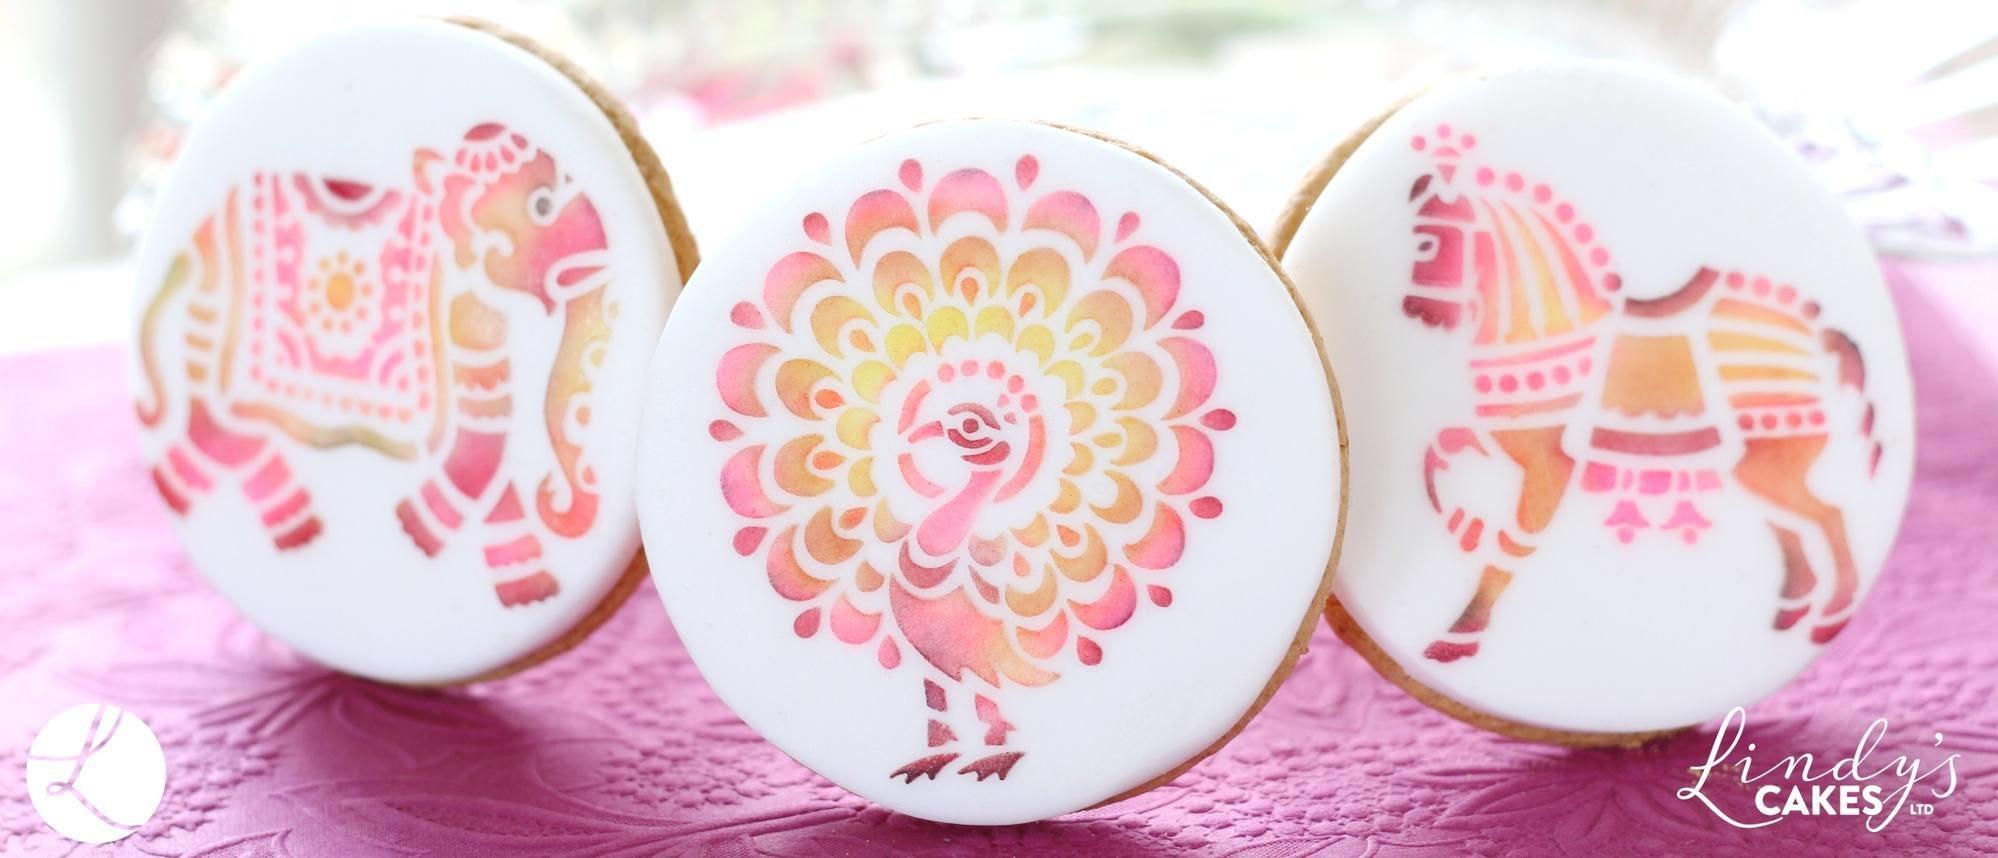 Indian animal stencils used to decorate biscuits